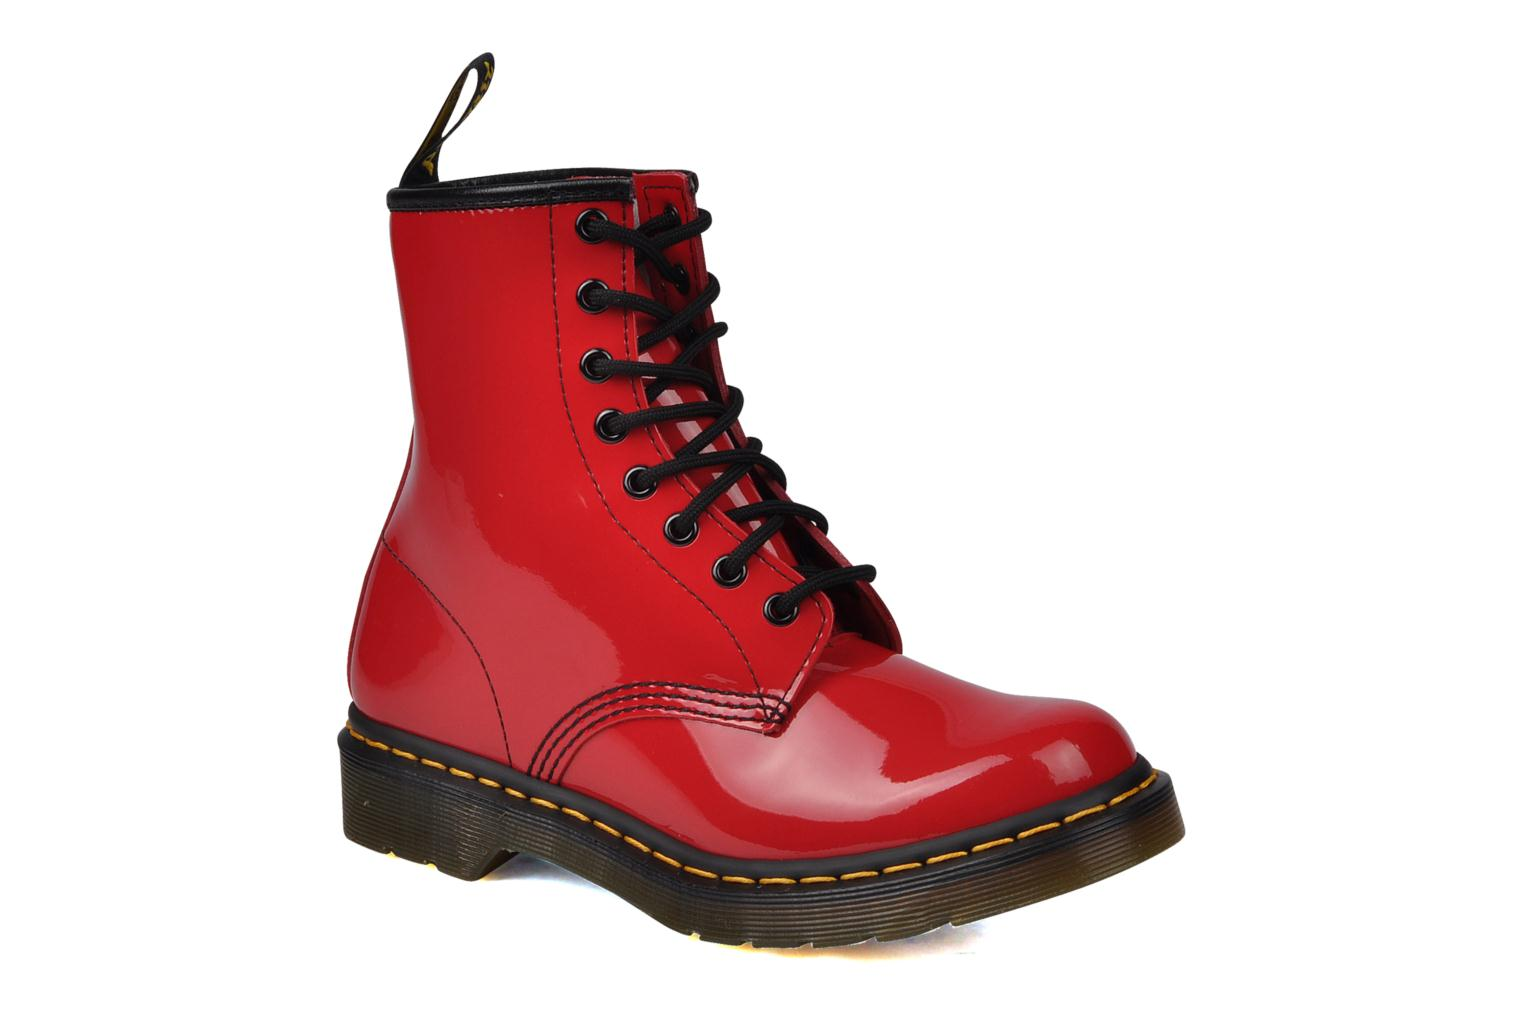 Marques Chaussure femme Dr. Martens femme 1460 W Red Patent Lamper